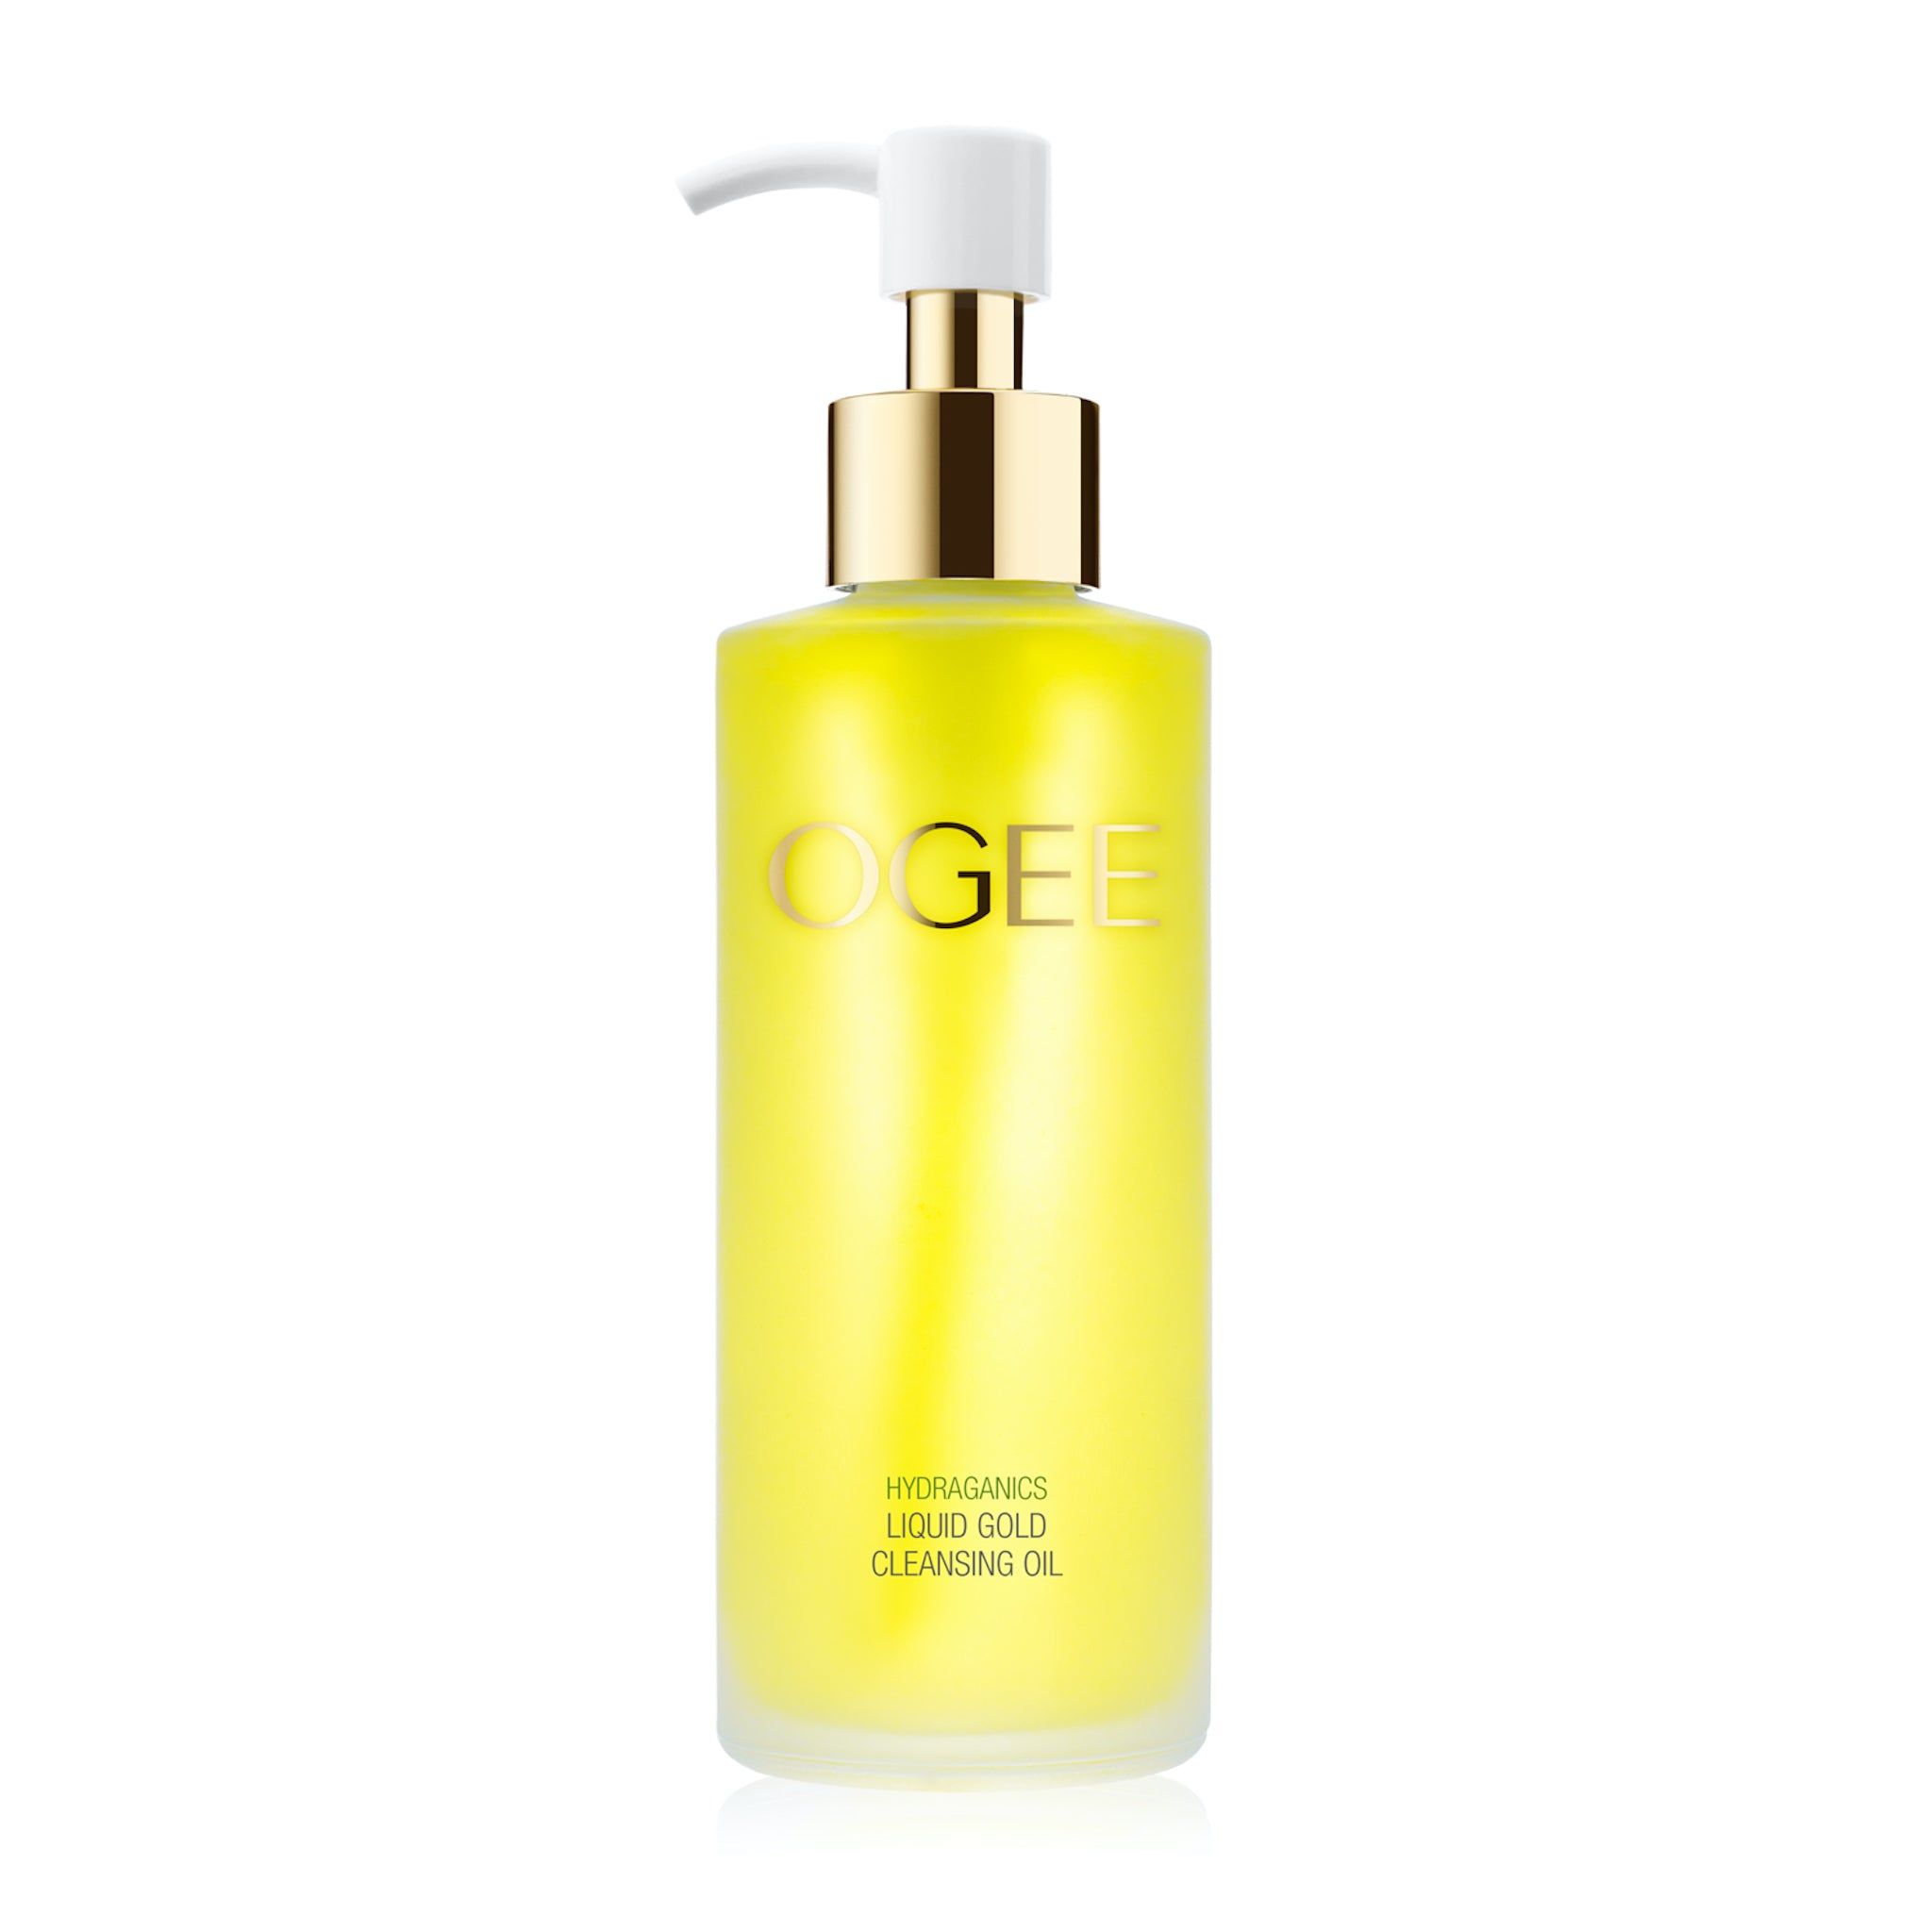 OGEE - Liquid Gold Cleansing Oil